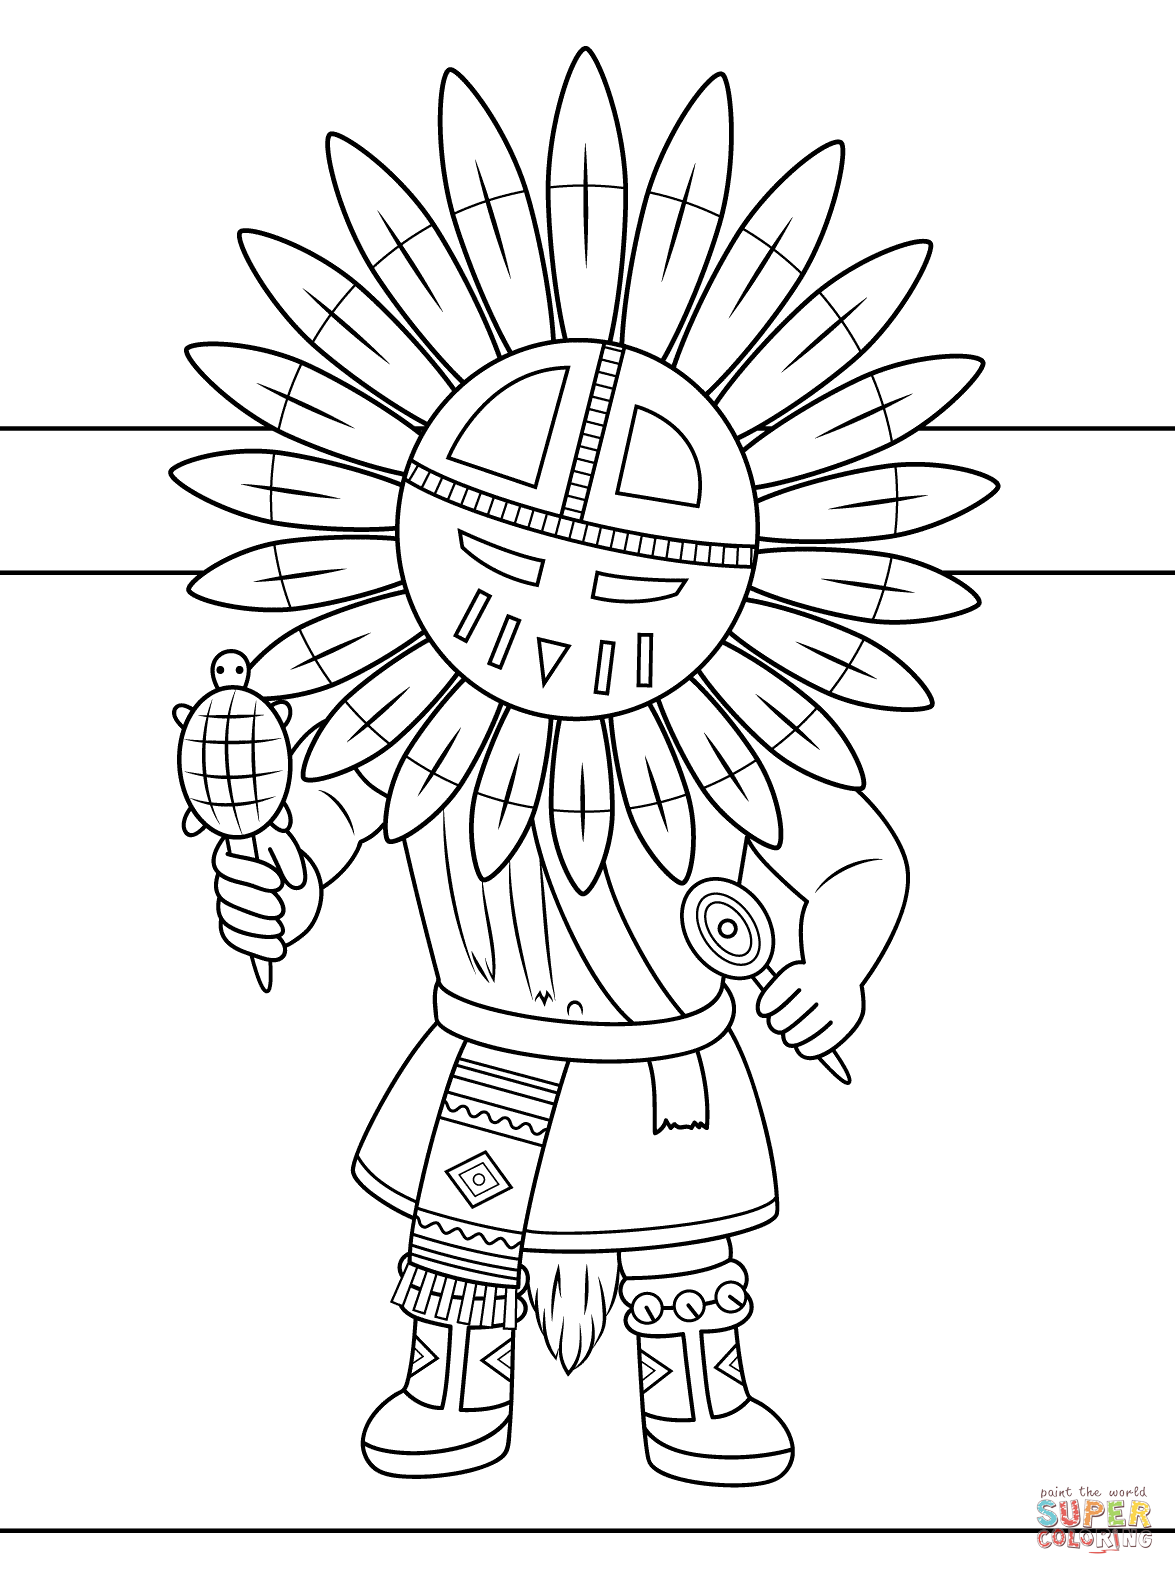 1175x1575 Revisited Indian Teepee Coloring Pages Top Native American Free